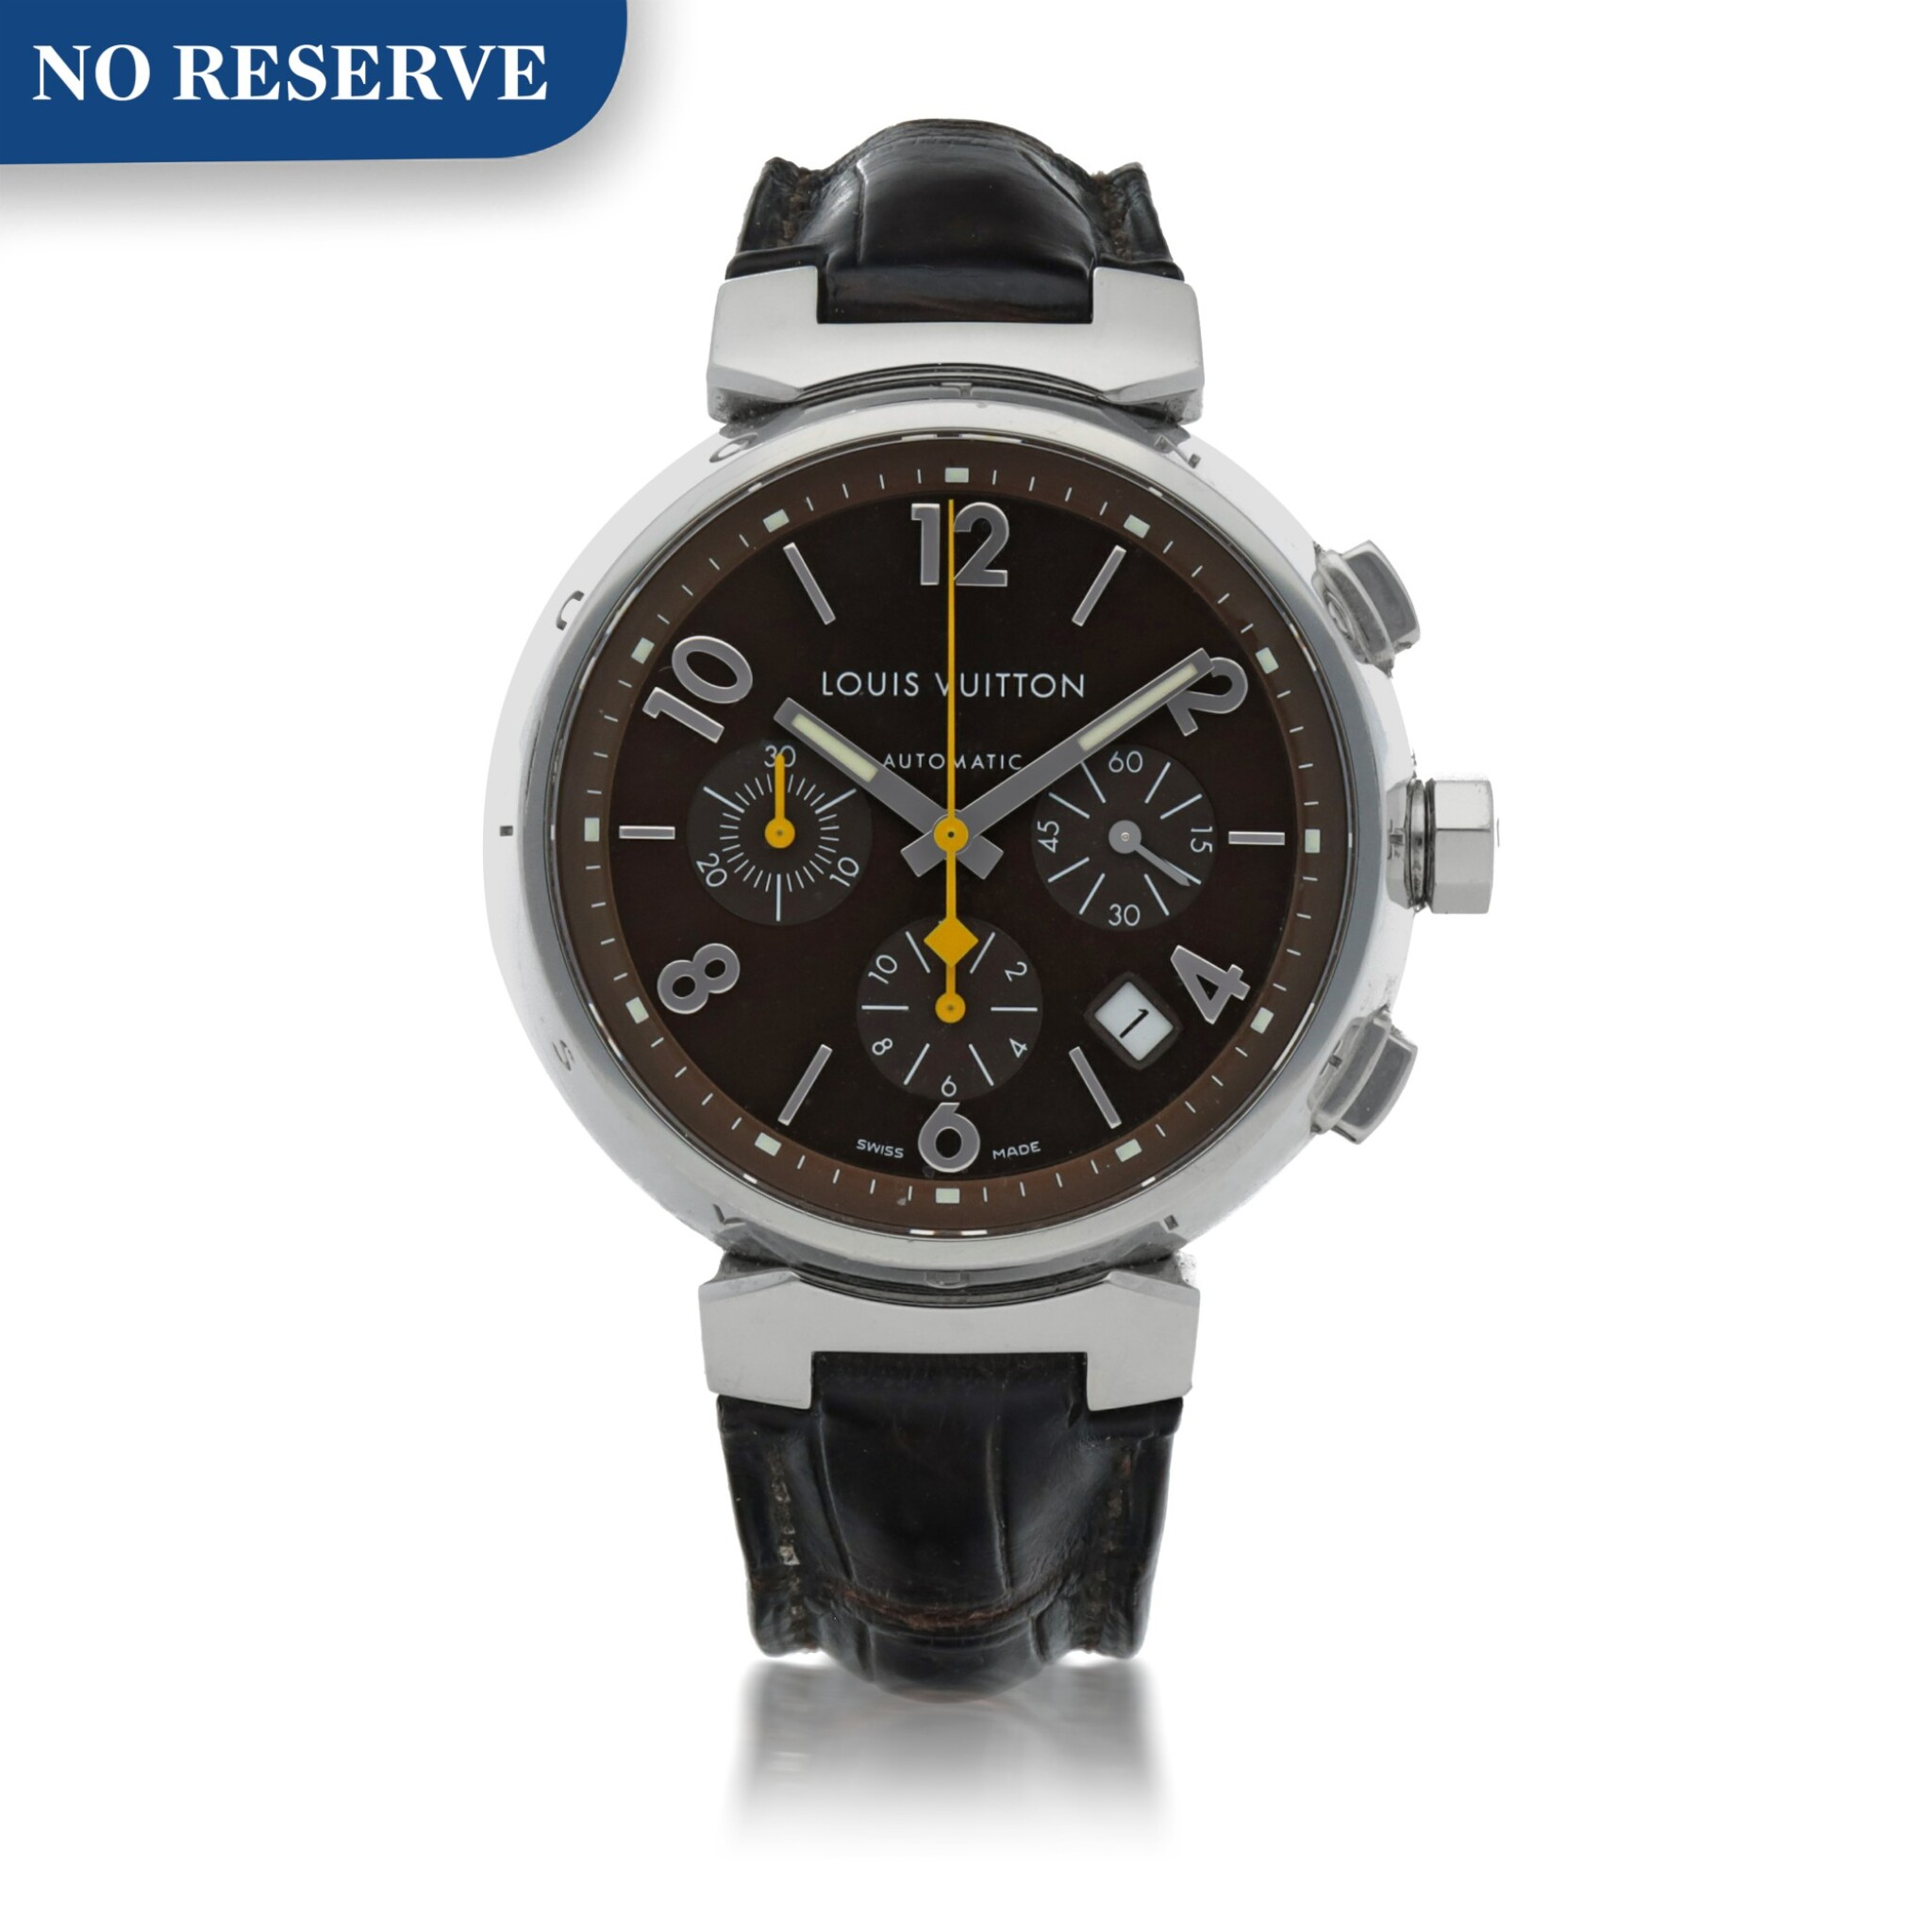 View full screen - View 1 of Lot 170. REF RB0925 STAINLESS STEEL CHRONOGRAPH WRISTWATCH WITH DATE CIRCA 2010.